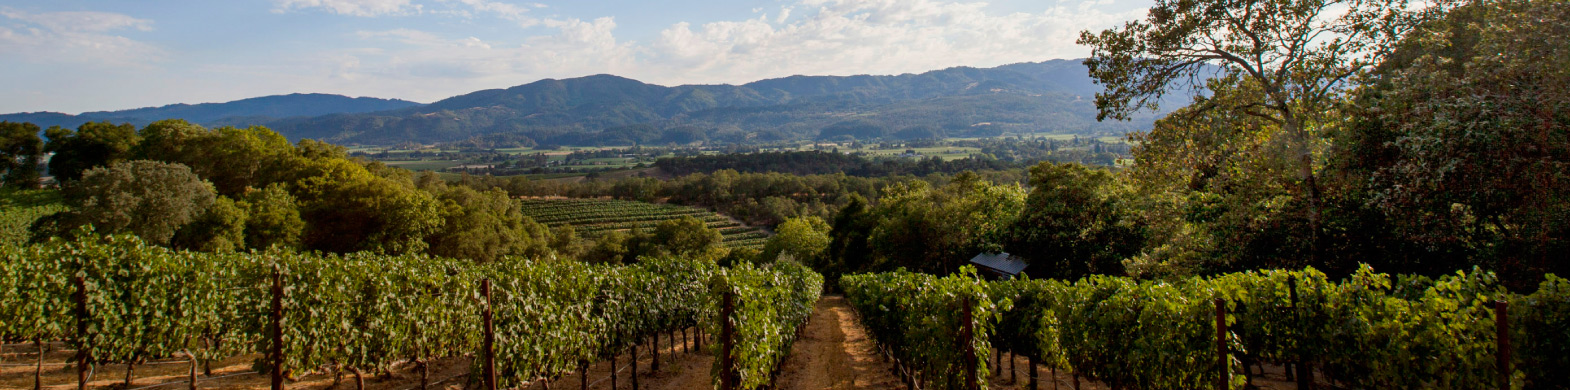 Nickel & Nickel: Quarry Vineyard